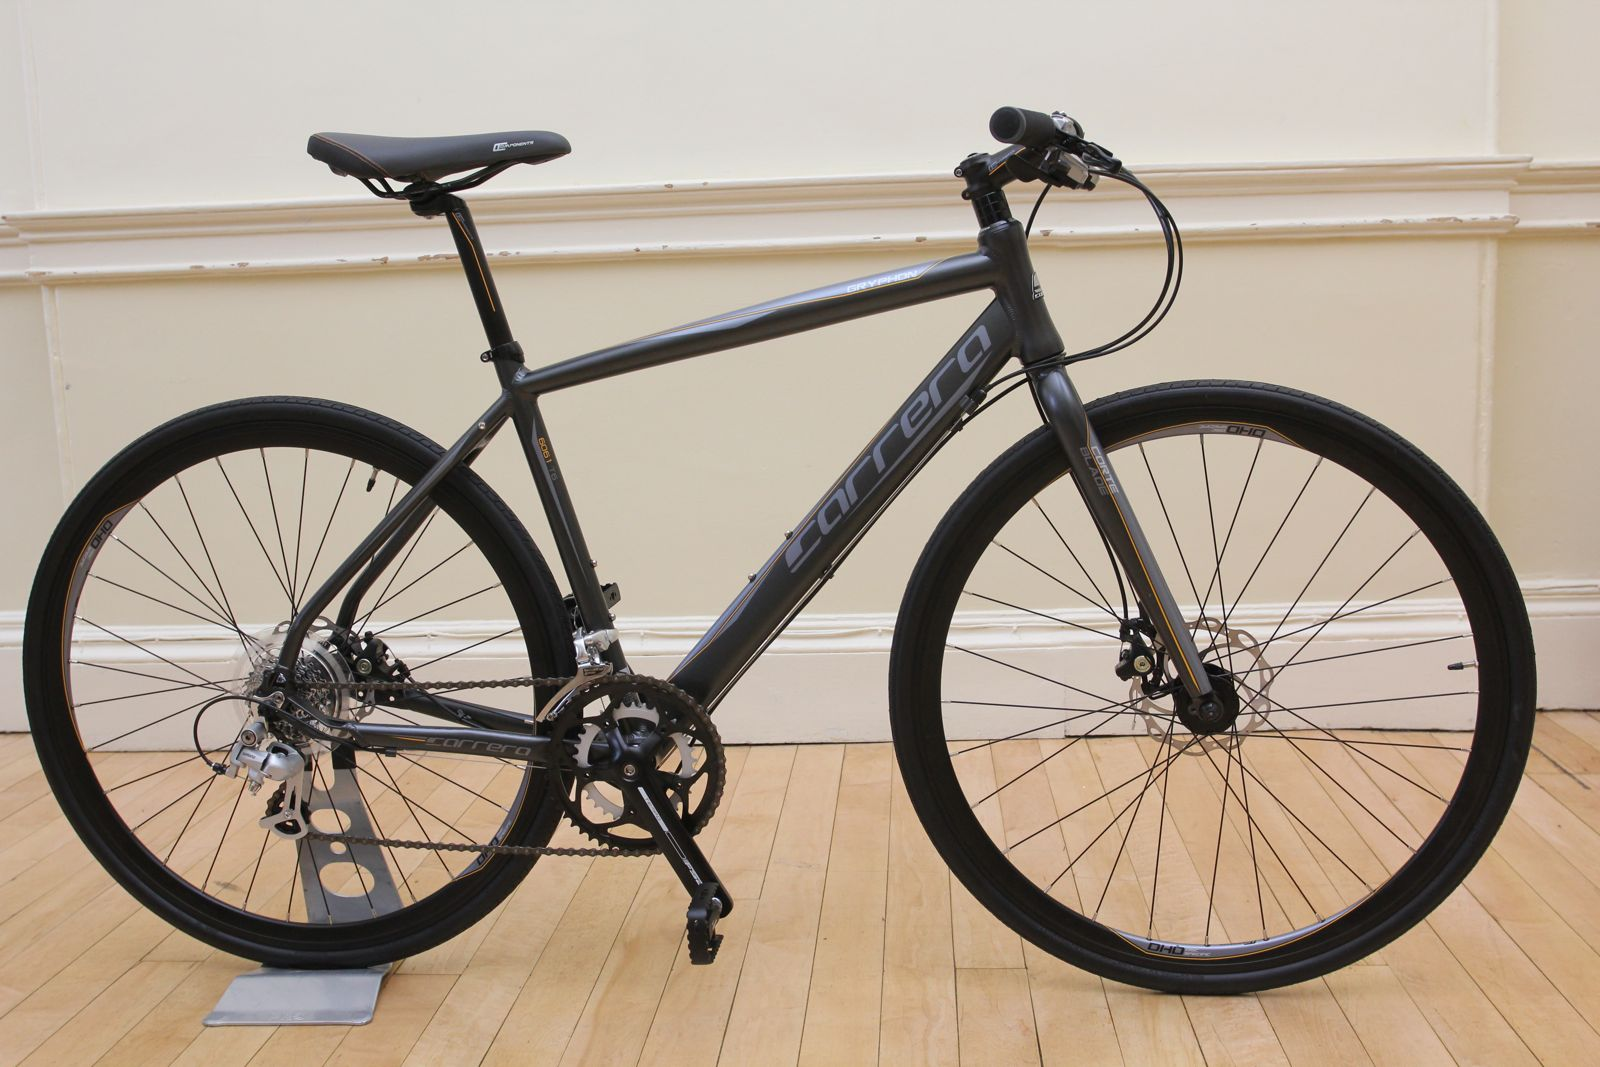 Latest Carrera bikes launched and already in Halford's